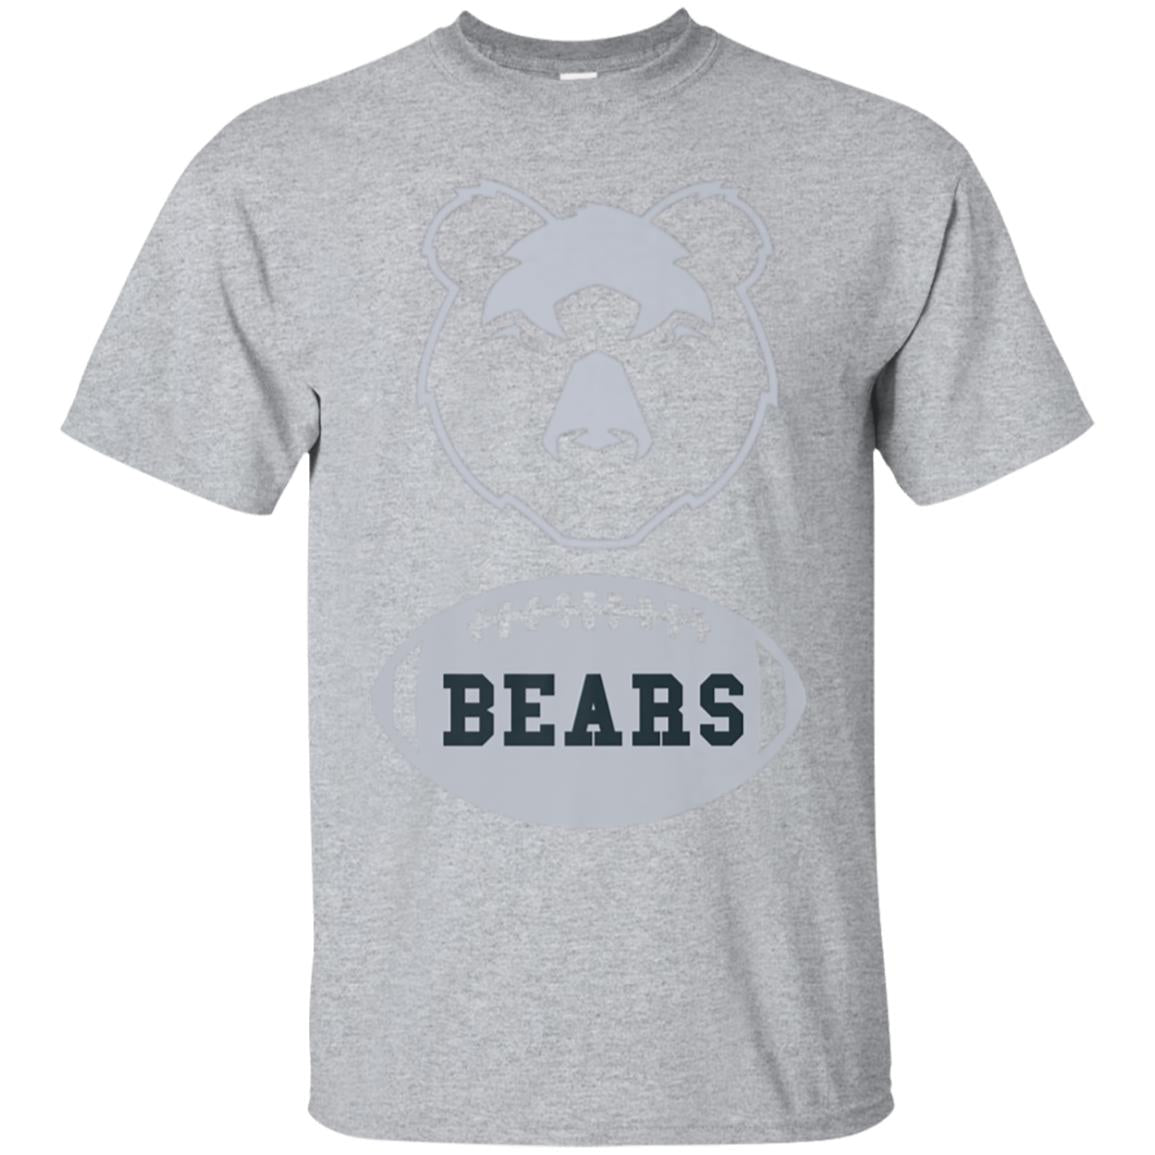 Bristol Bears Top English Rugby League Gift T-Shirt 99promocode